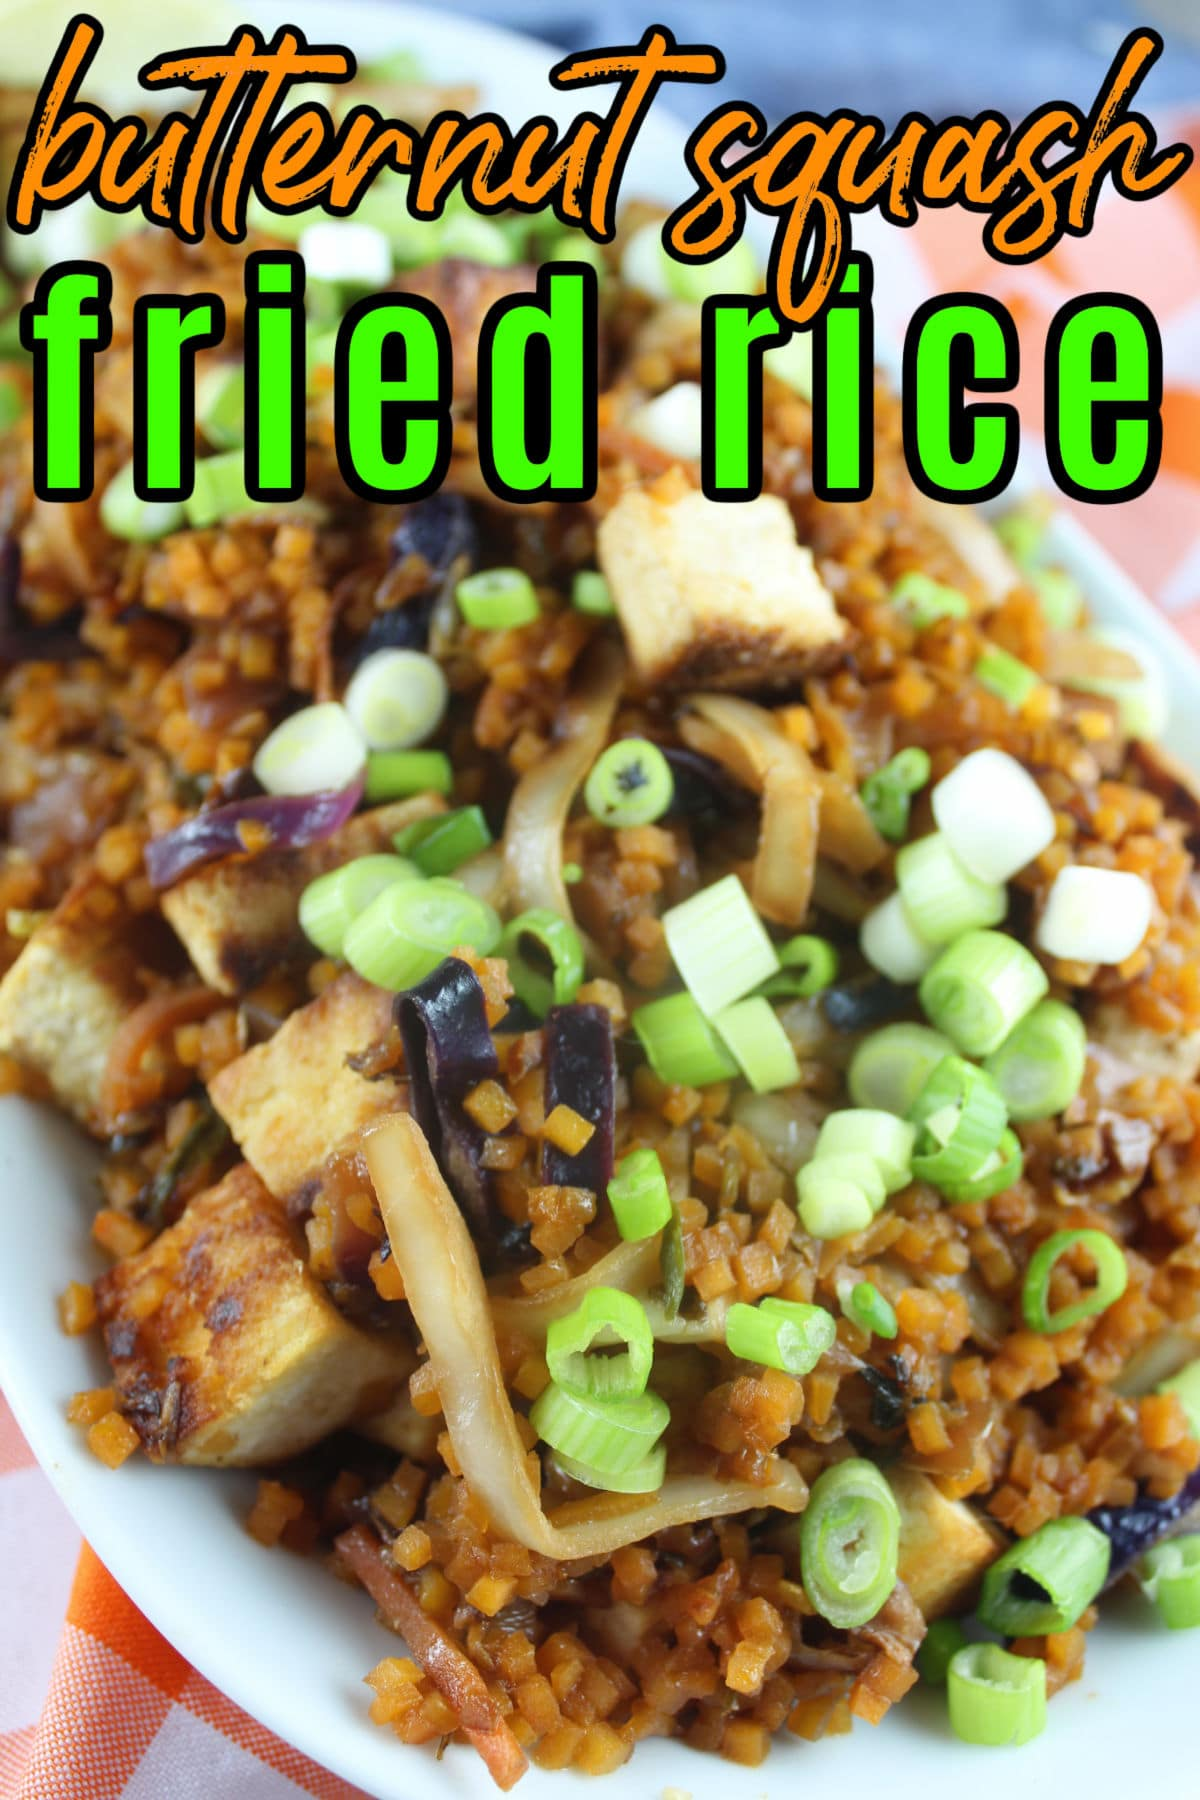 """Butternut Squash Fried Rice will open your eyes to a whole new Meatless Monday! This dish is so tasty and easy to make - and FILLED with veggies! Just a few ingredients layered on top of each other - make a delicious """"fried rice"""" out of butternut squash.  via @foodhussy"""